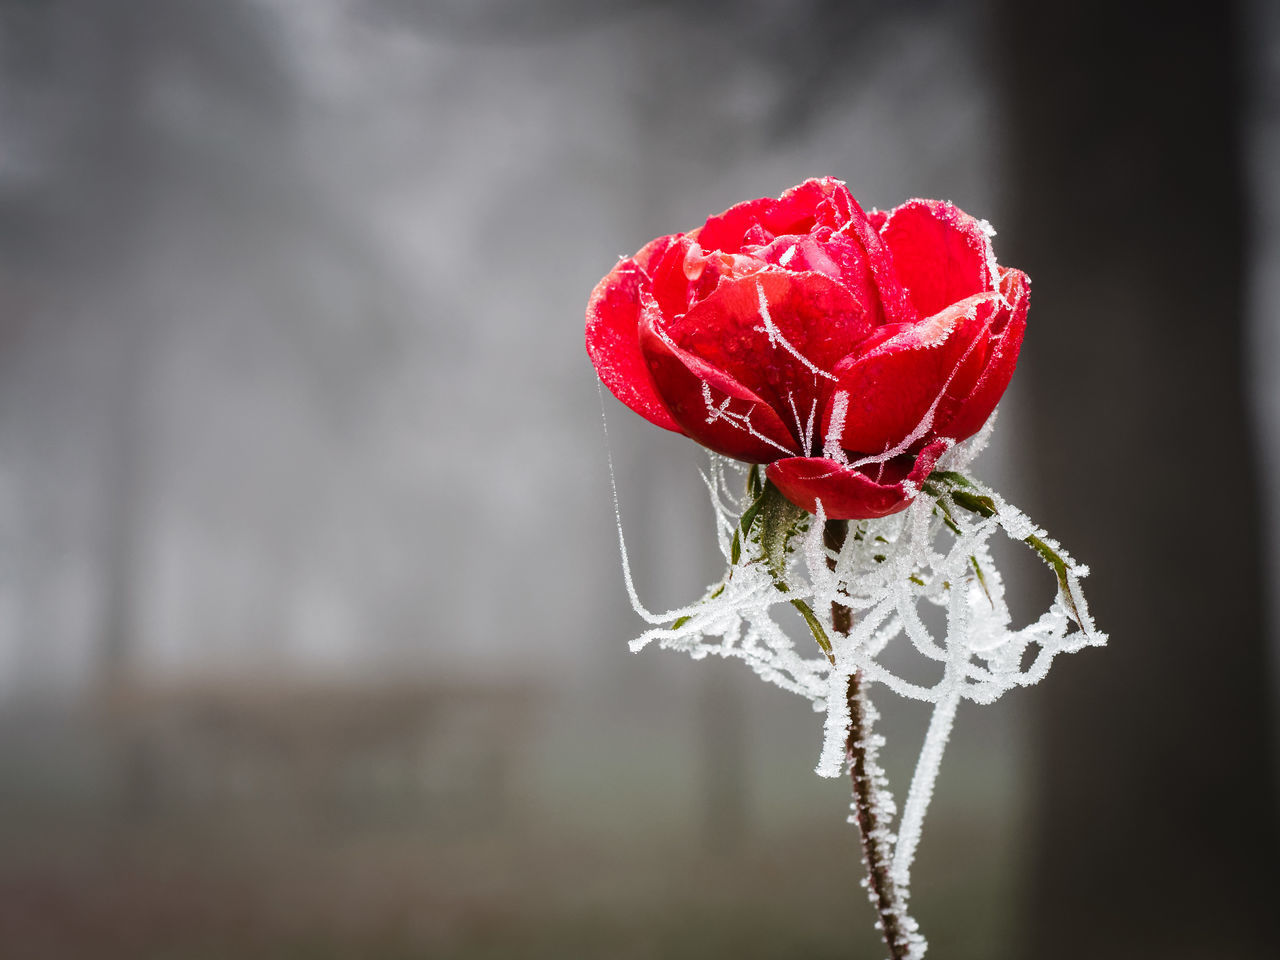 flower, fragility, vulnerability, flowering plant, plant, close-up, freshness, red, focus on foreground, beauty in nature, flower head, growth, inflorescence, petal, nature, rose, day, rose - flower, no people, outdoors, sepal